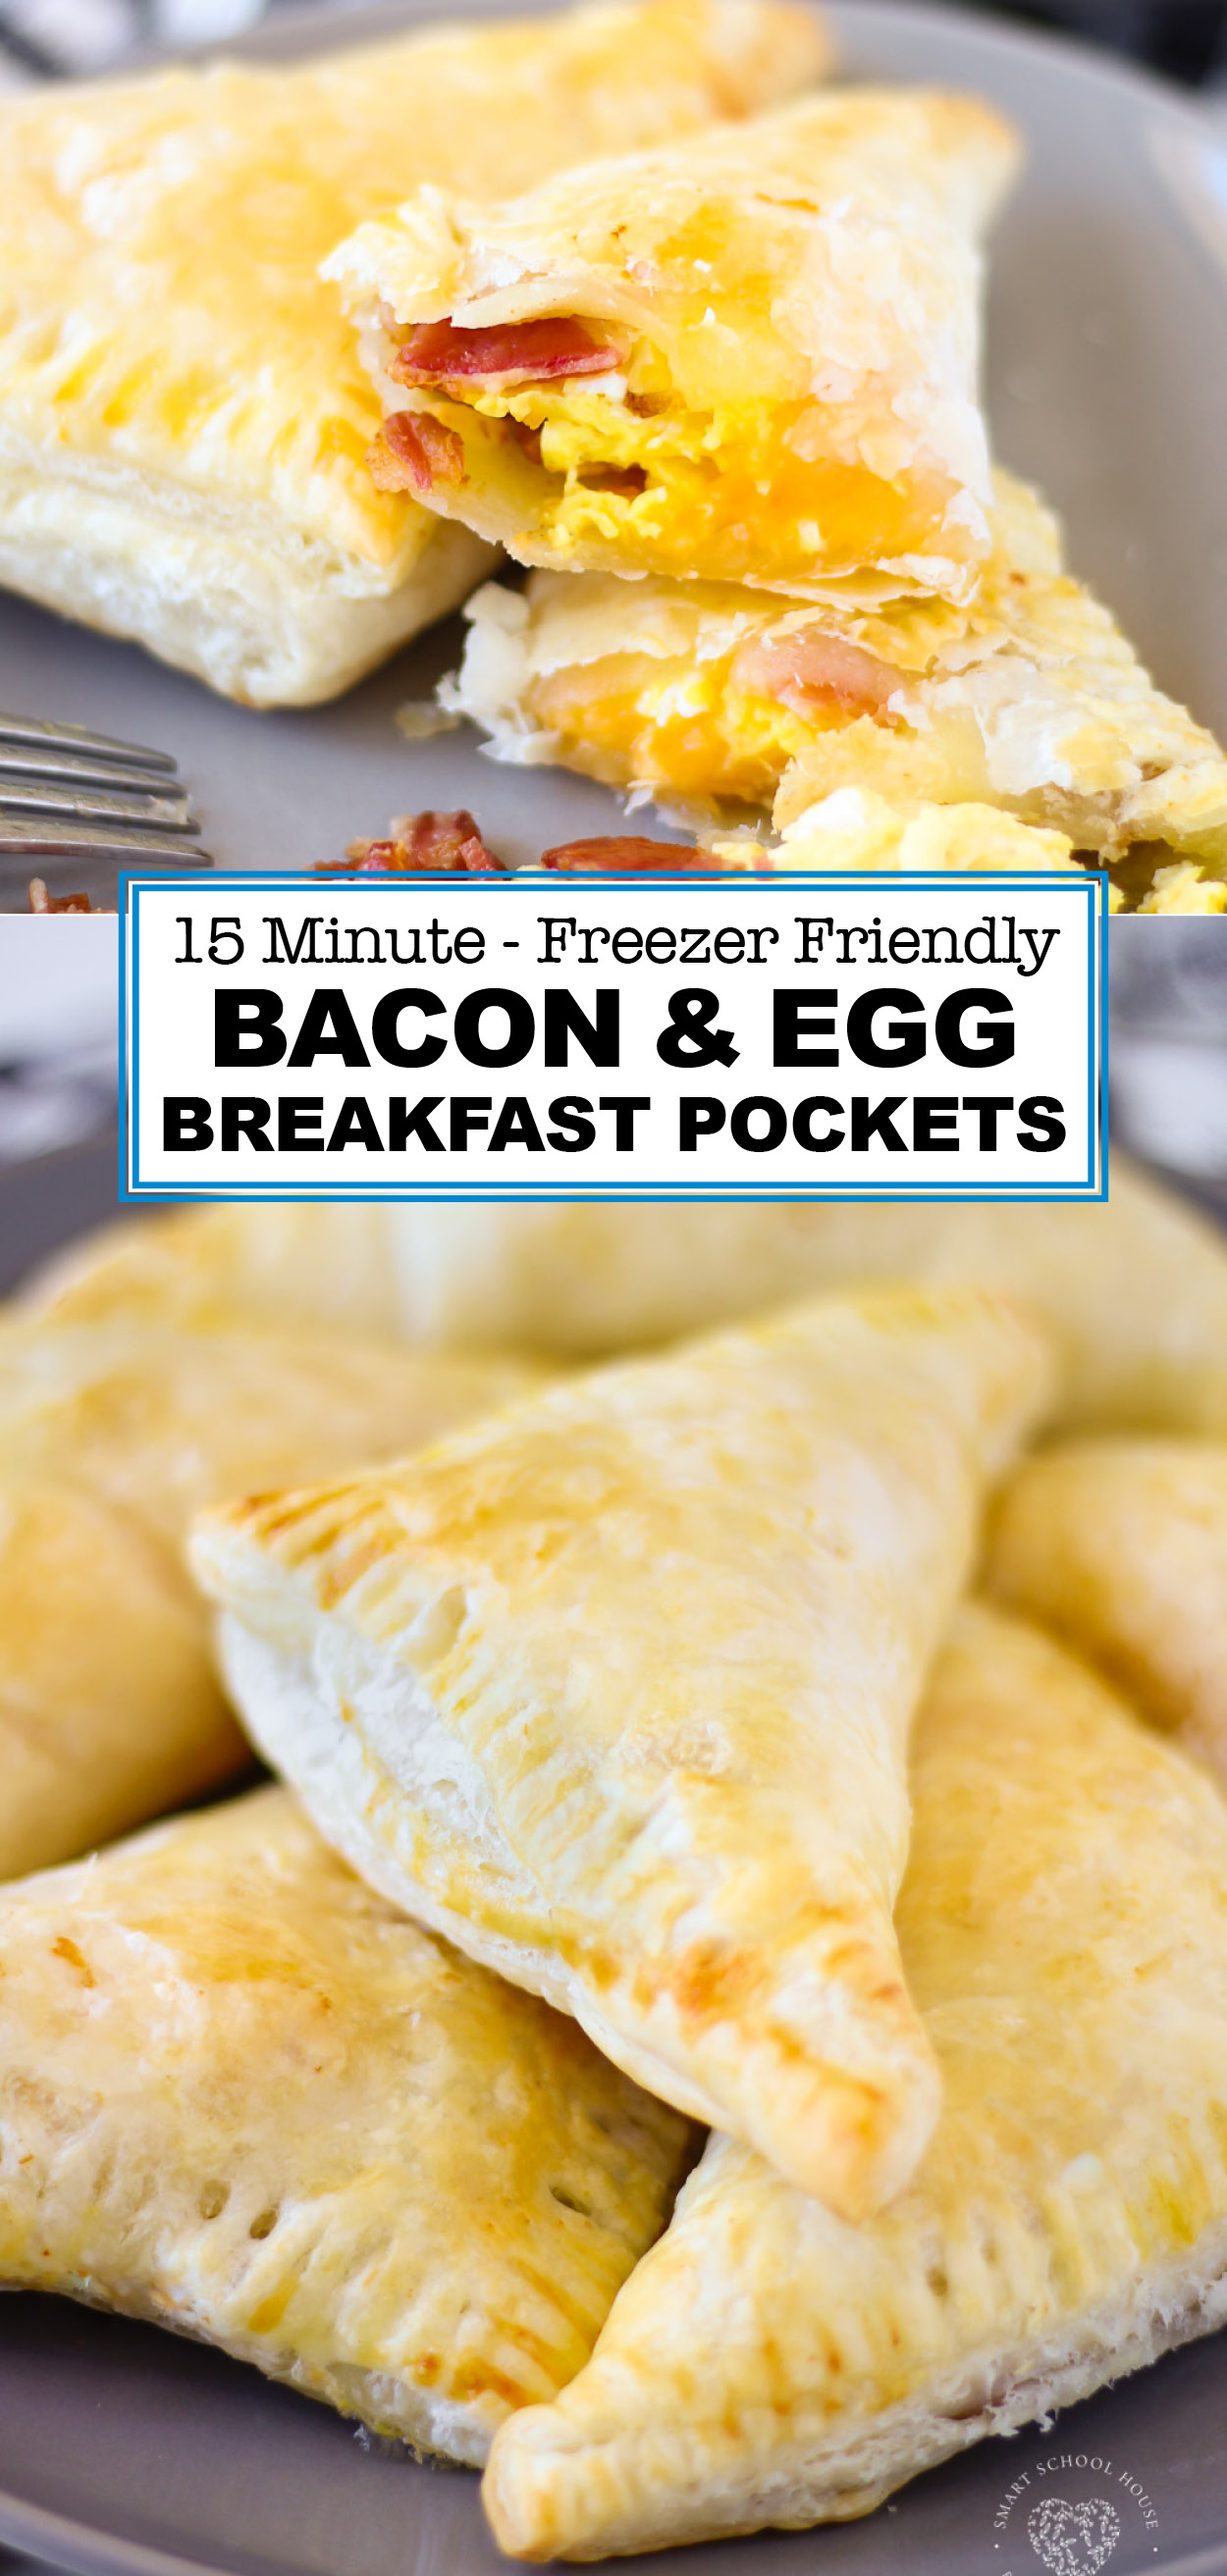 Bacon and Egg Breakfast Pockets Made with Puff Pastry Dough. These Breakfast Pockets are great to make ahead and can be frozen. Kids love them! A complete breakfast inside a tidy pocket of dough. DELICIOUS!